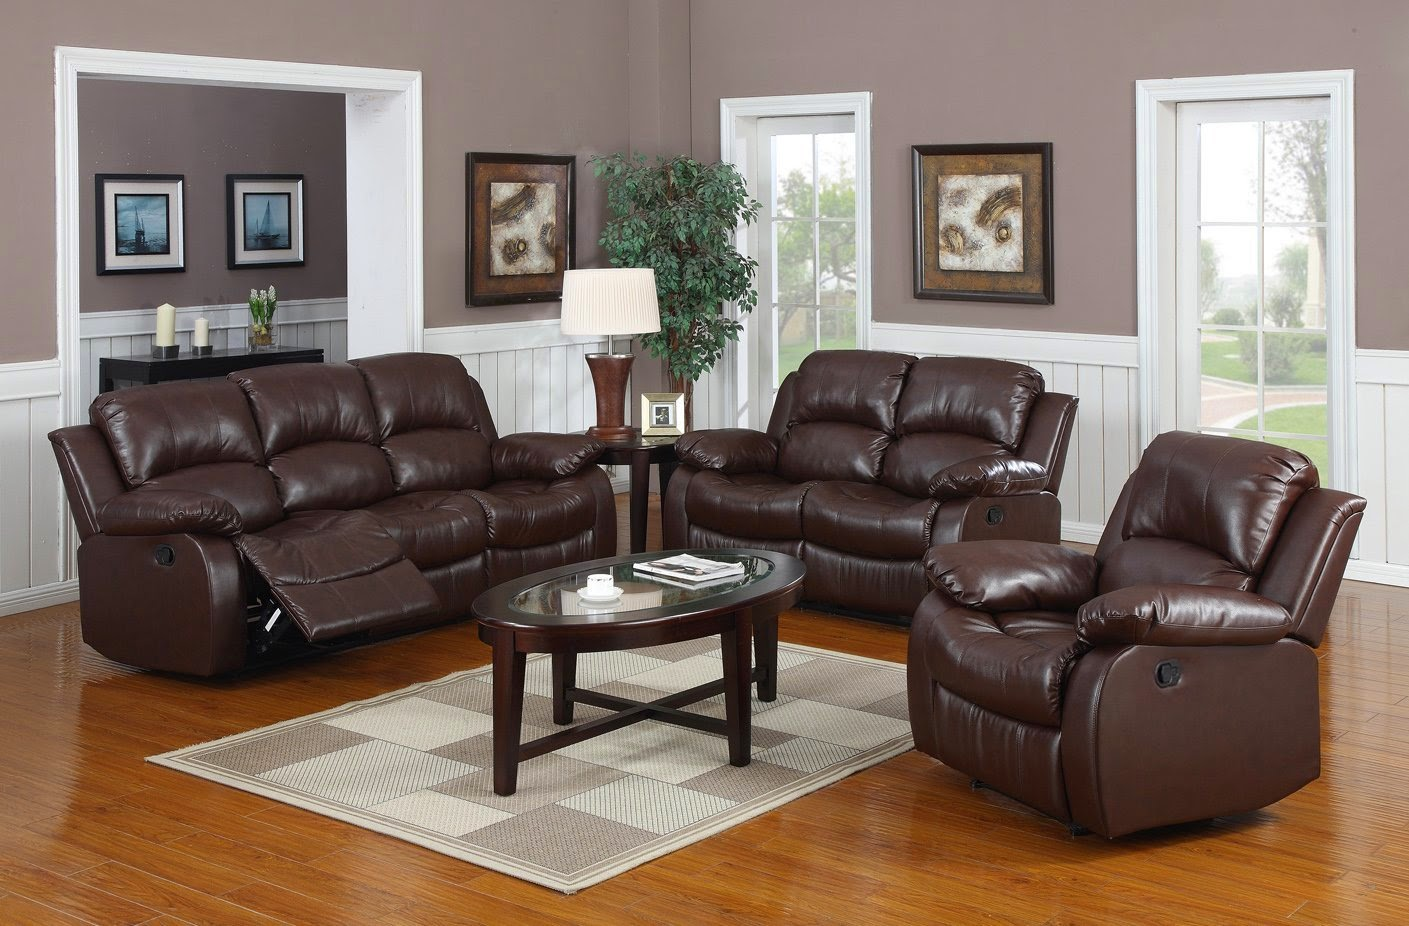 the best reclining leather sofa reviews leather recliner sofa sale uk. Black Bedroom Furniture Sets. Home Design Ideas